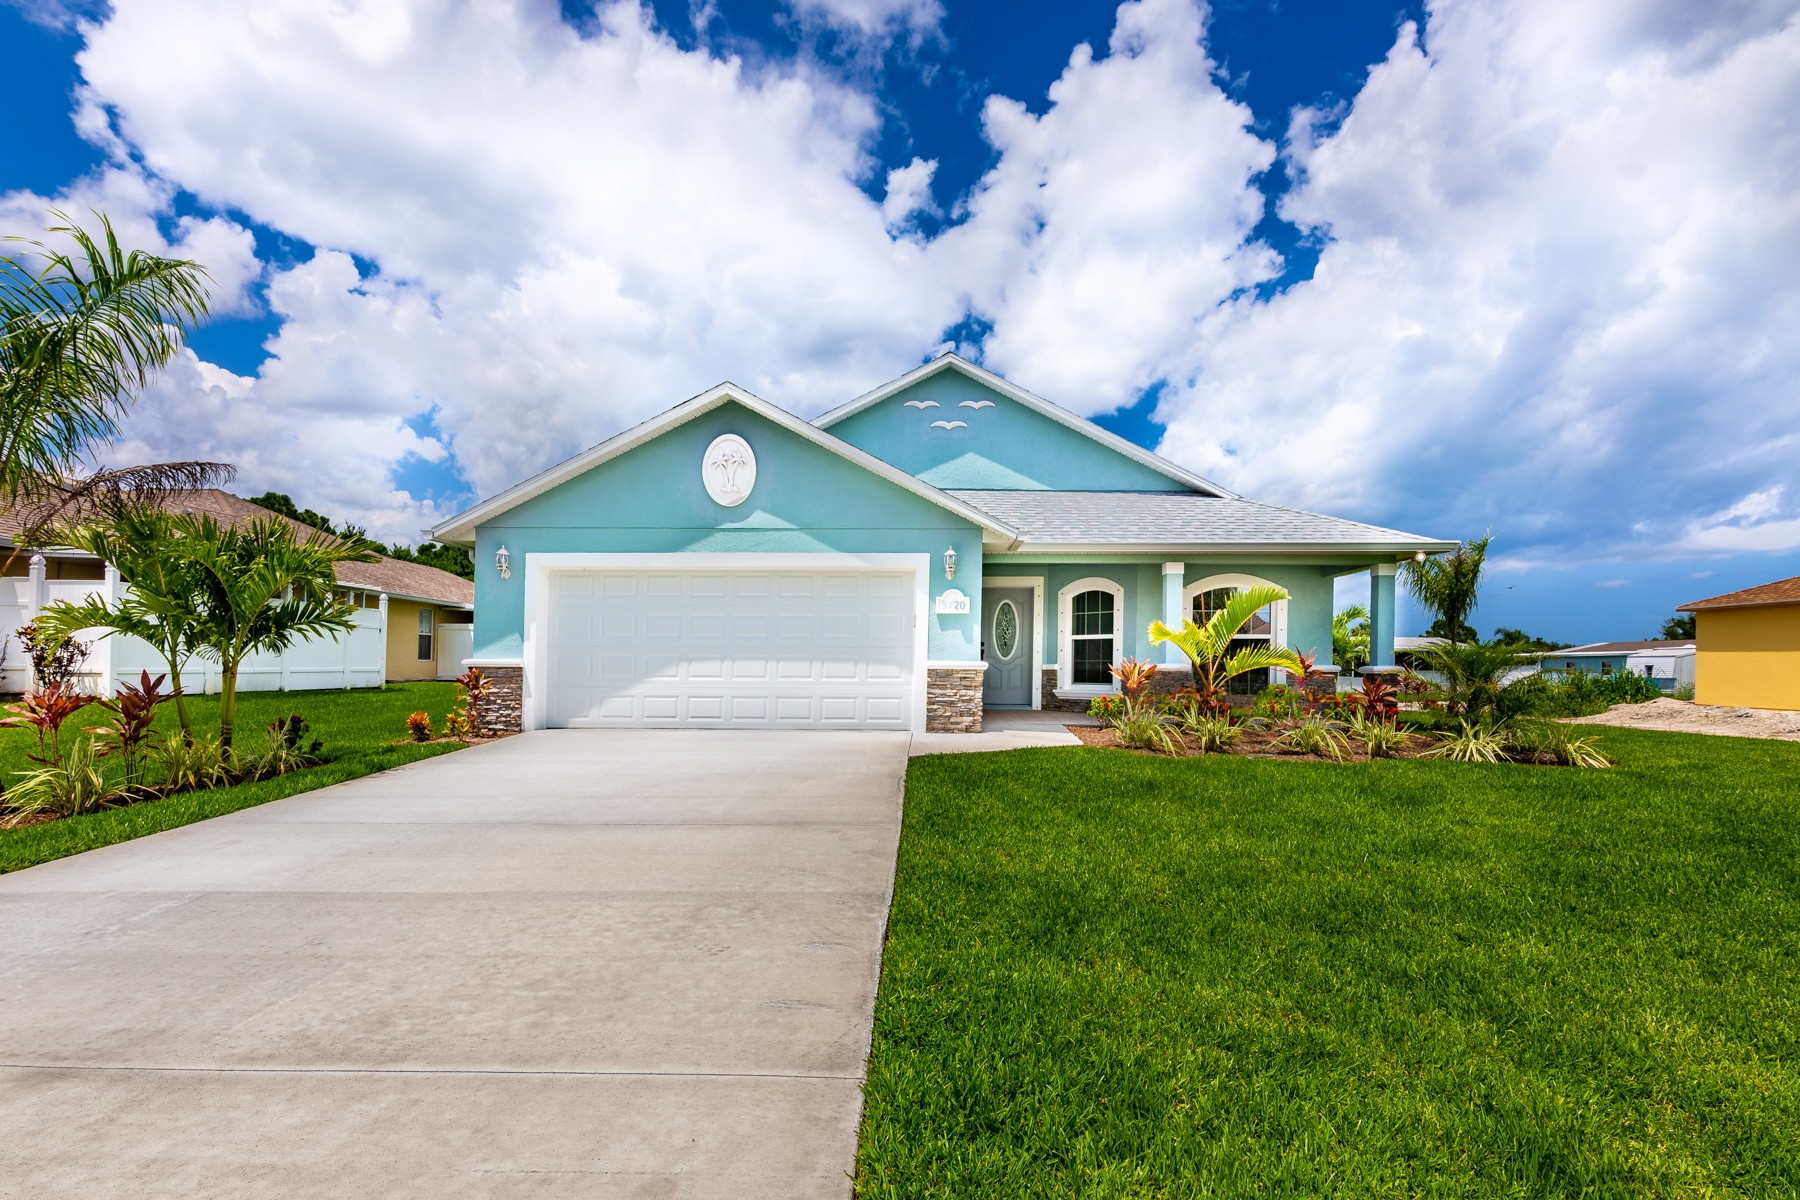 Single Family Homes for Sale at Beautiful, Brand-New Home With Contemporary Style & Luxury Textiles 3720 12th Street Micco, Florida 32976 United States